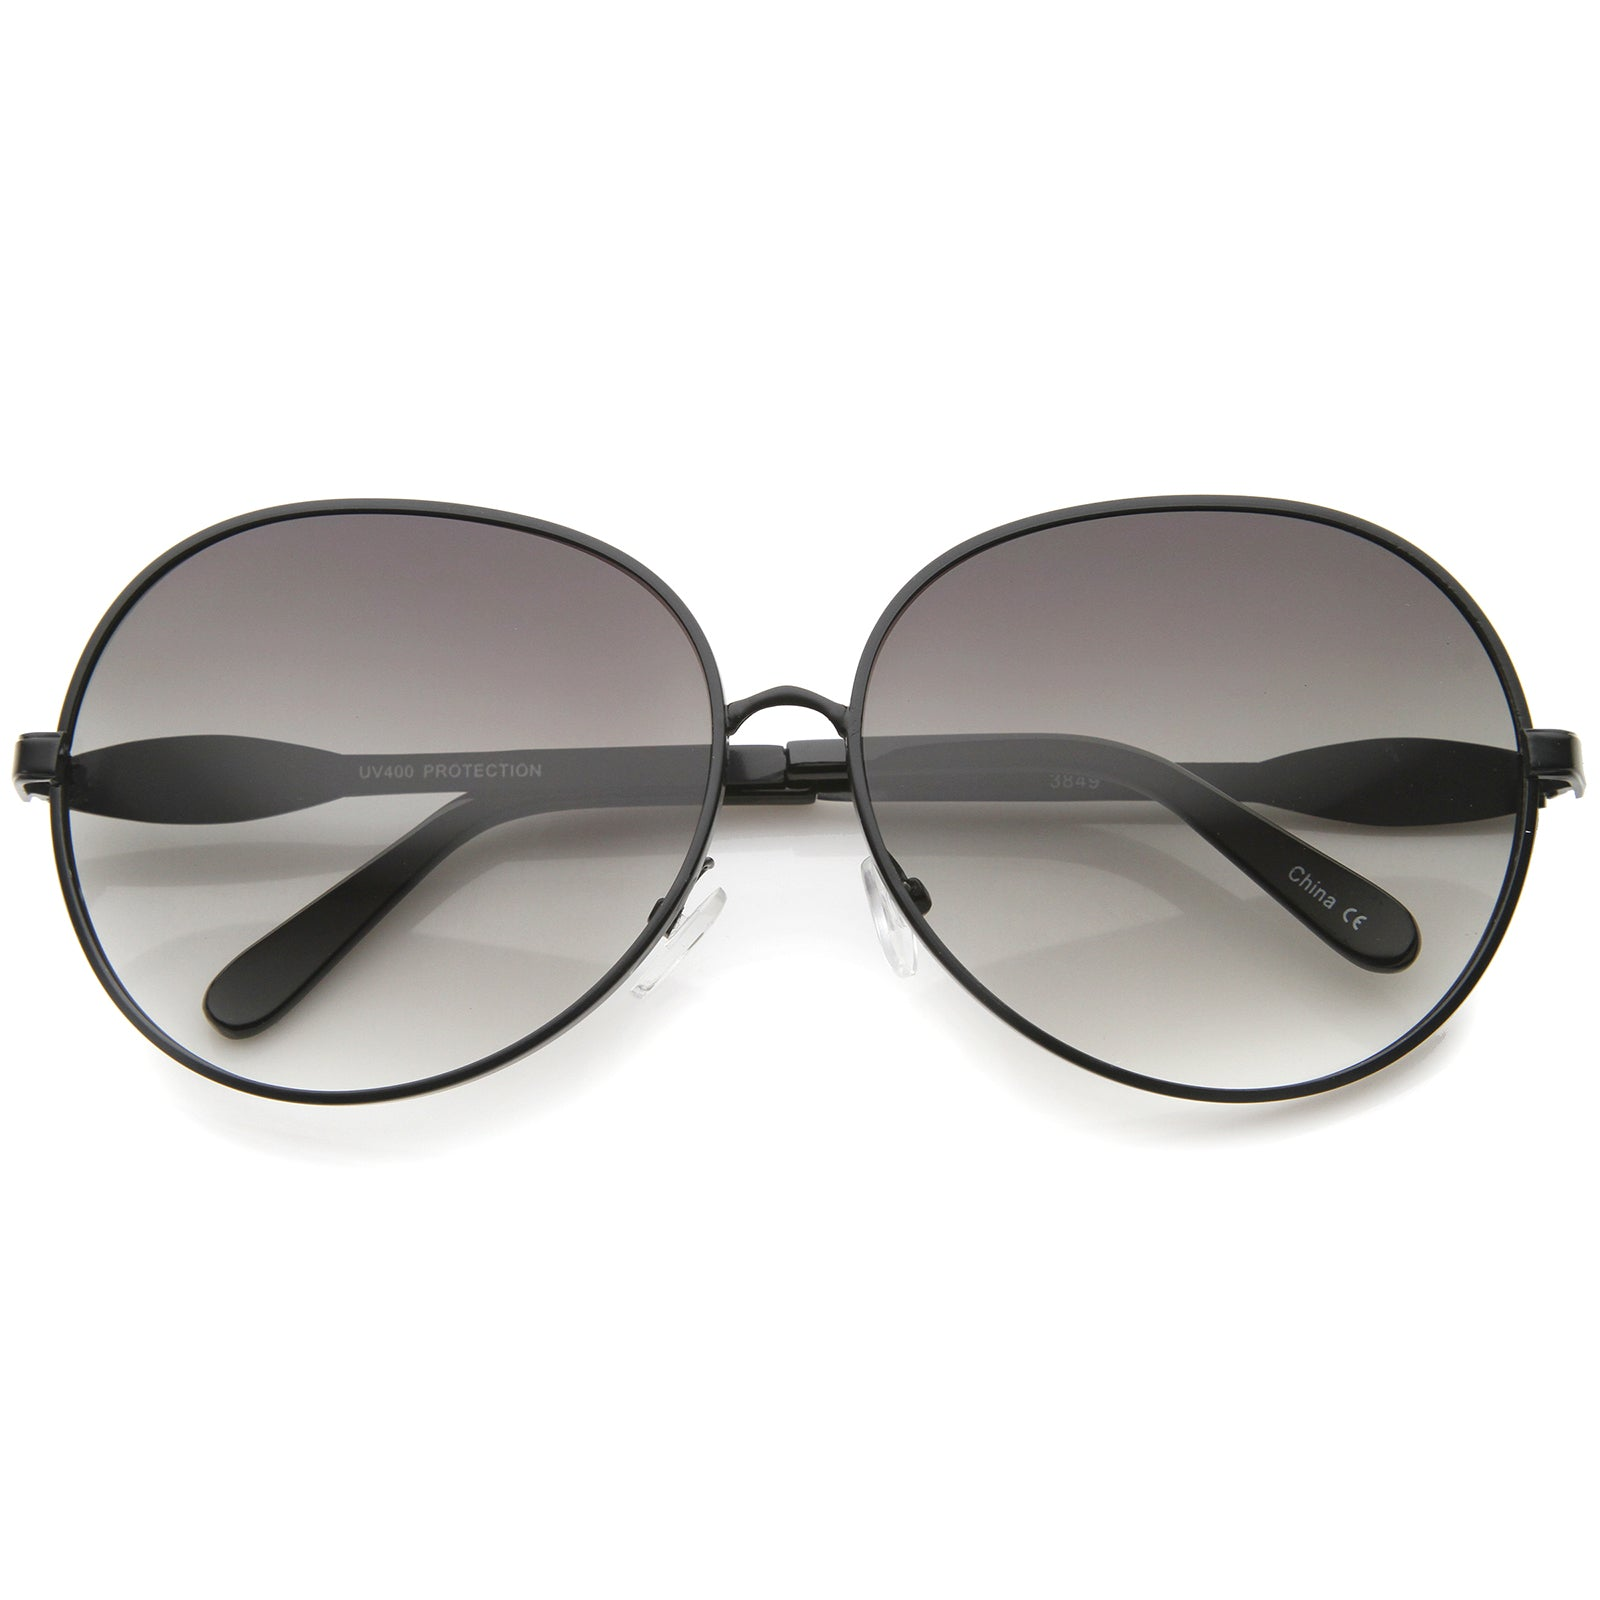 Womens Glam Full Metal Frame Oversized Round Sunglasses 63mm - sunglass.la - 1